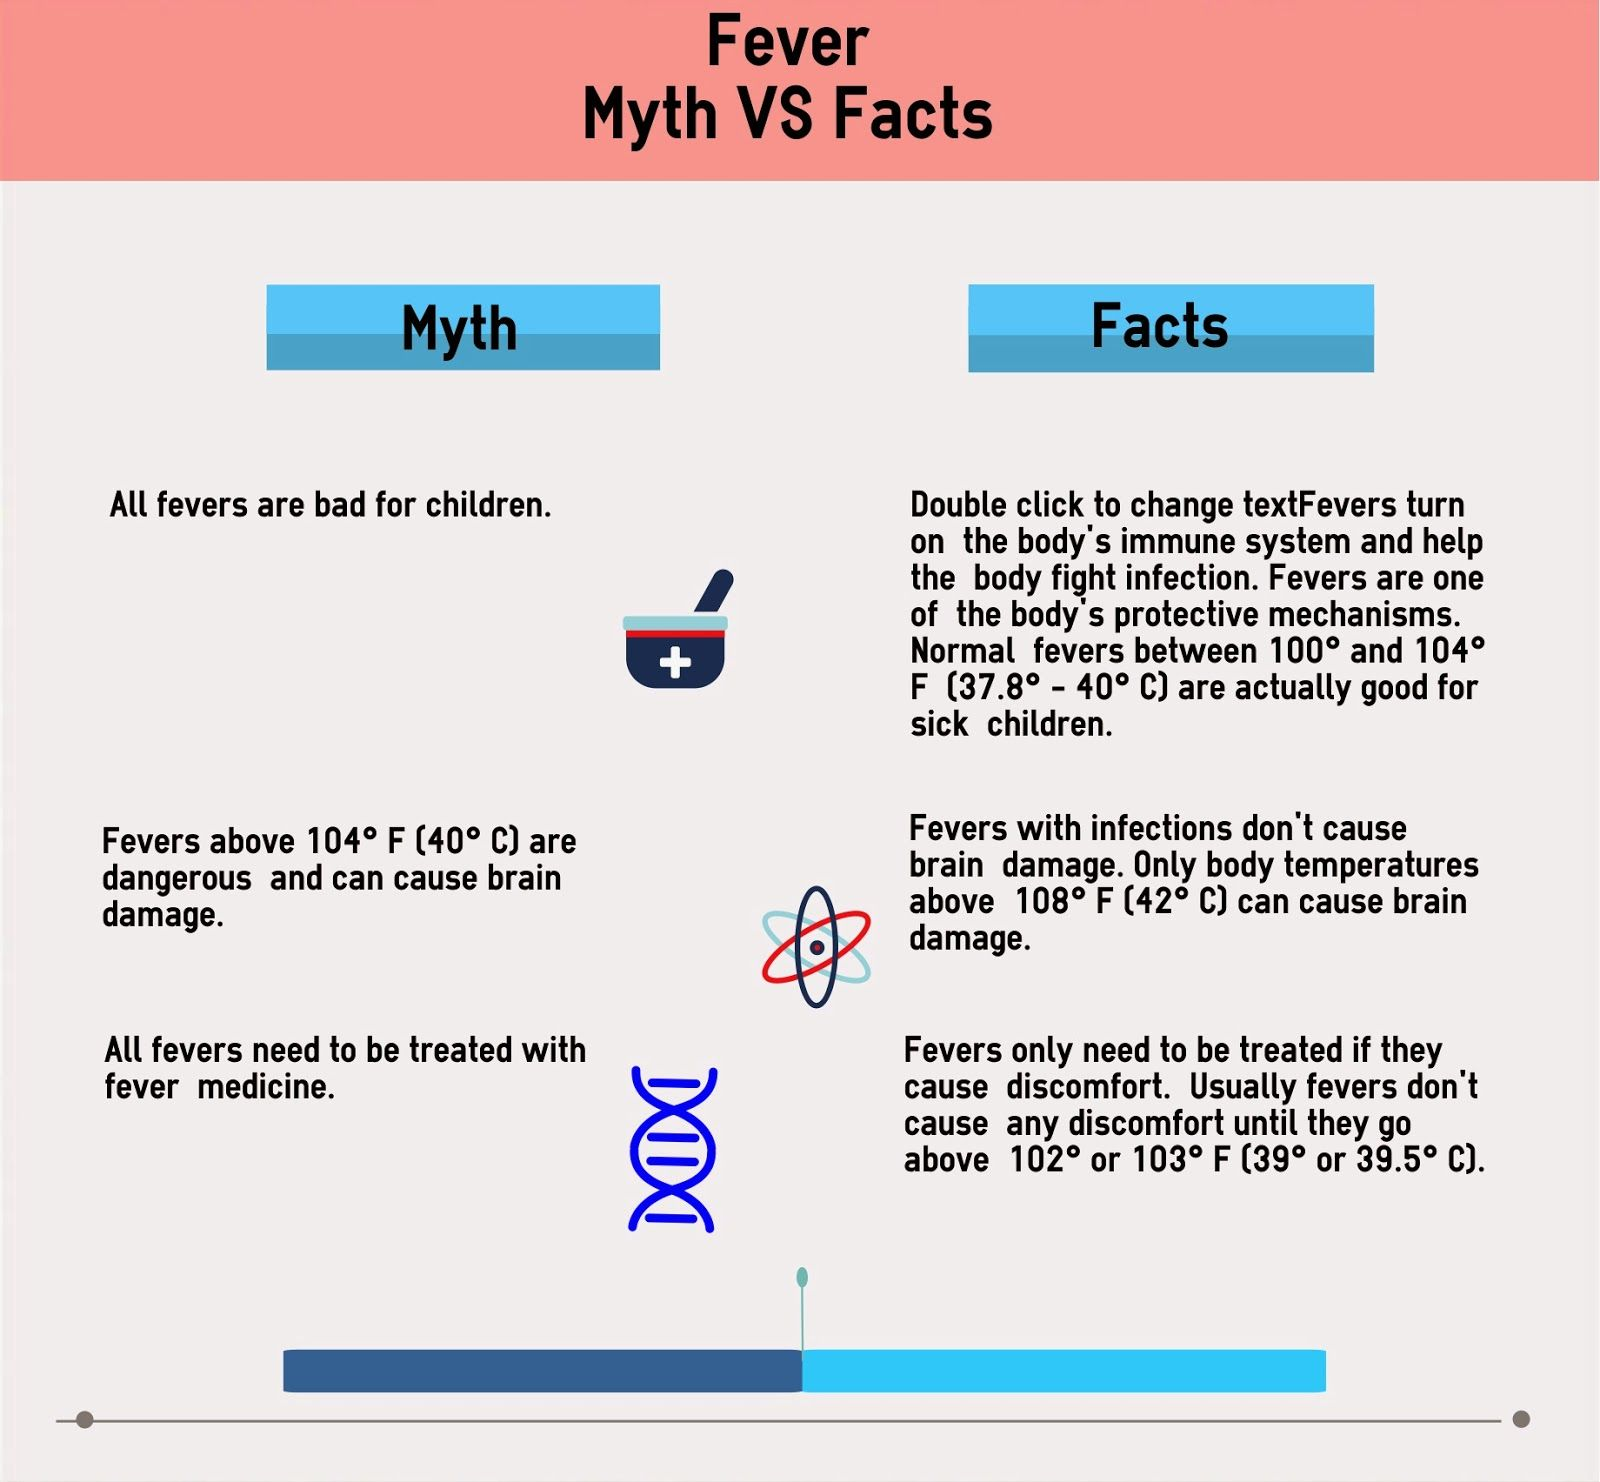 Theon Pharmaceuticals Fever Myth Vs Facts Pharmaceutical Facts